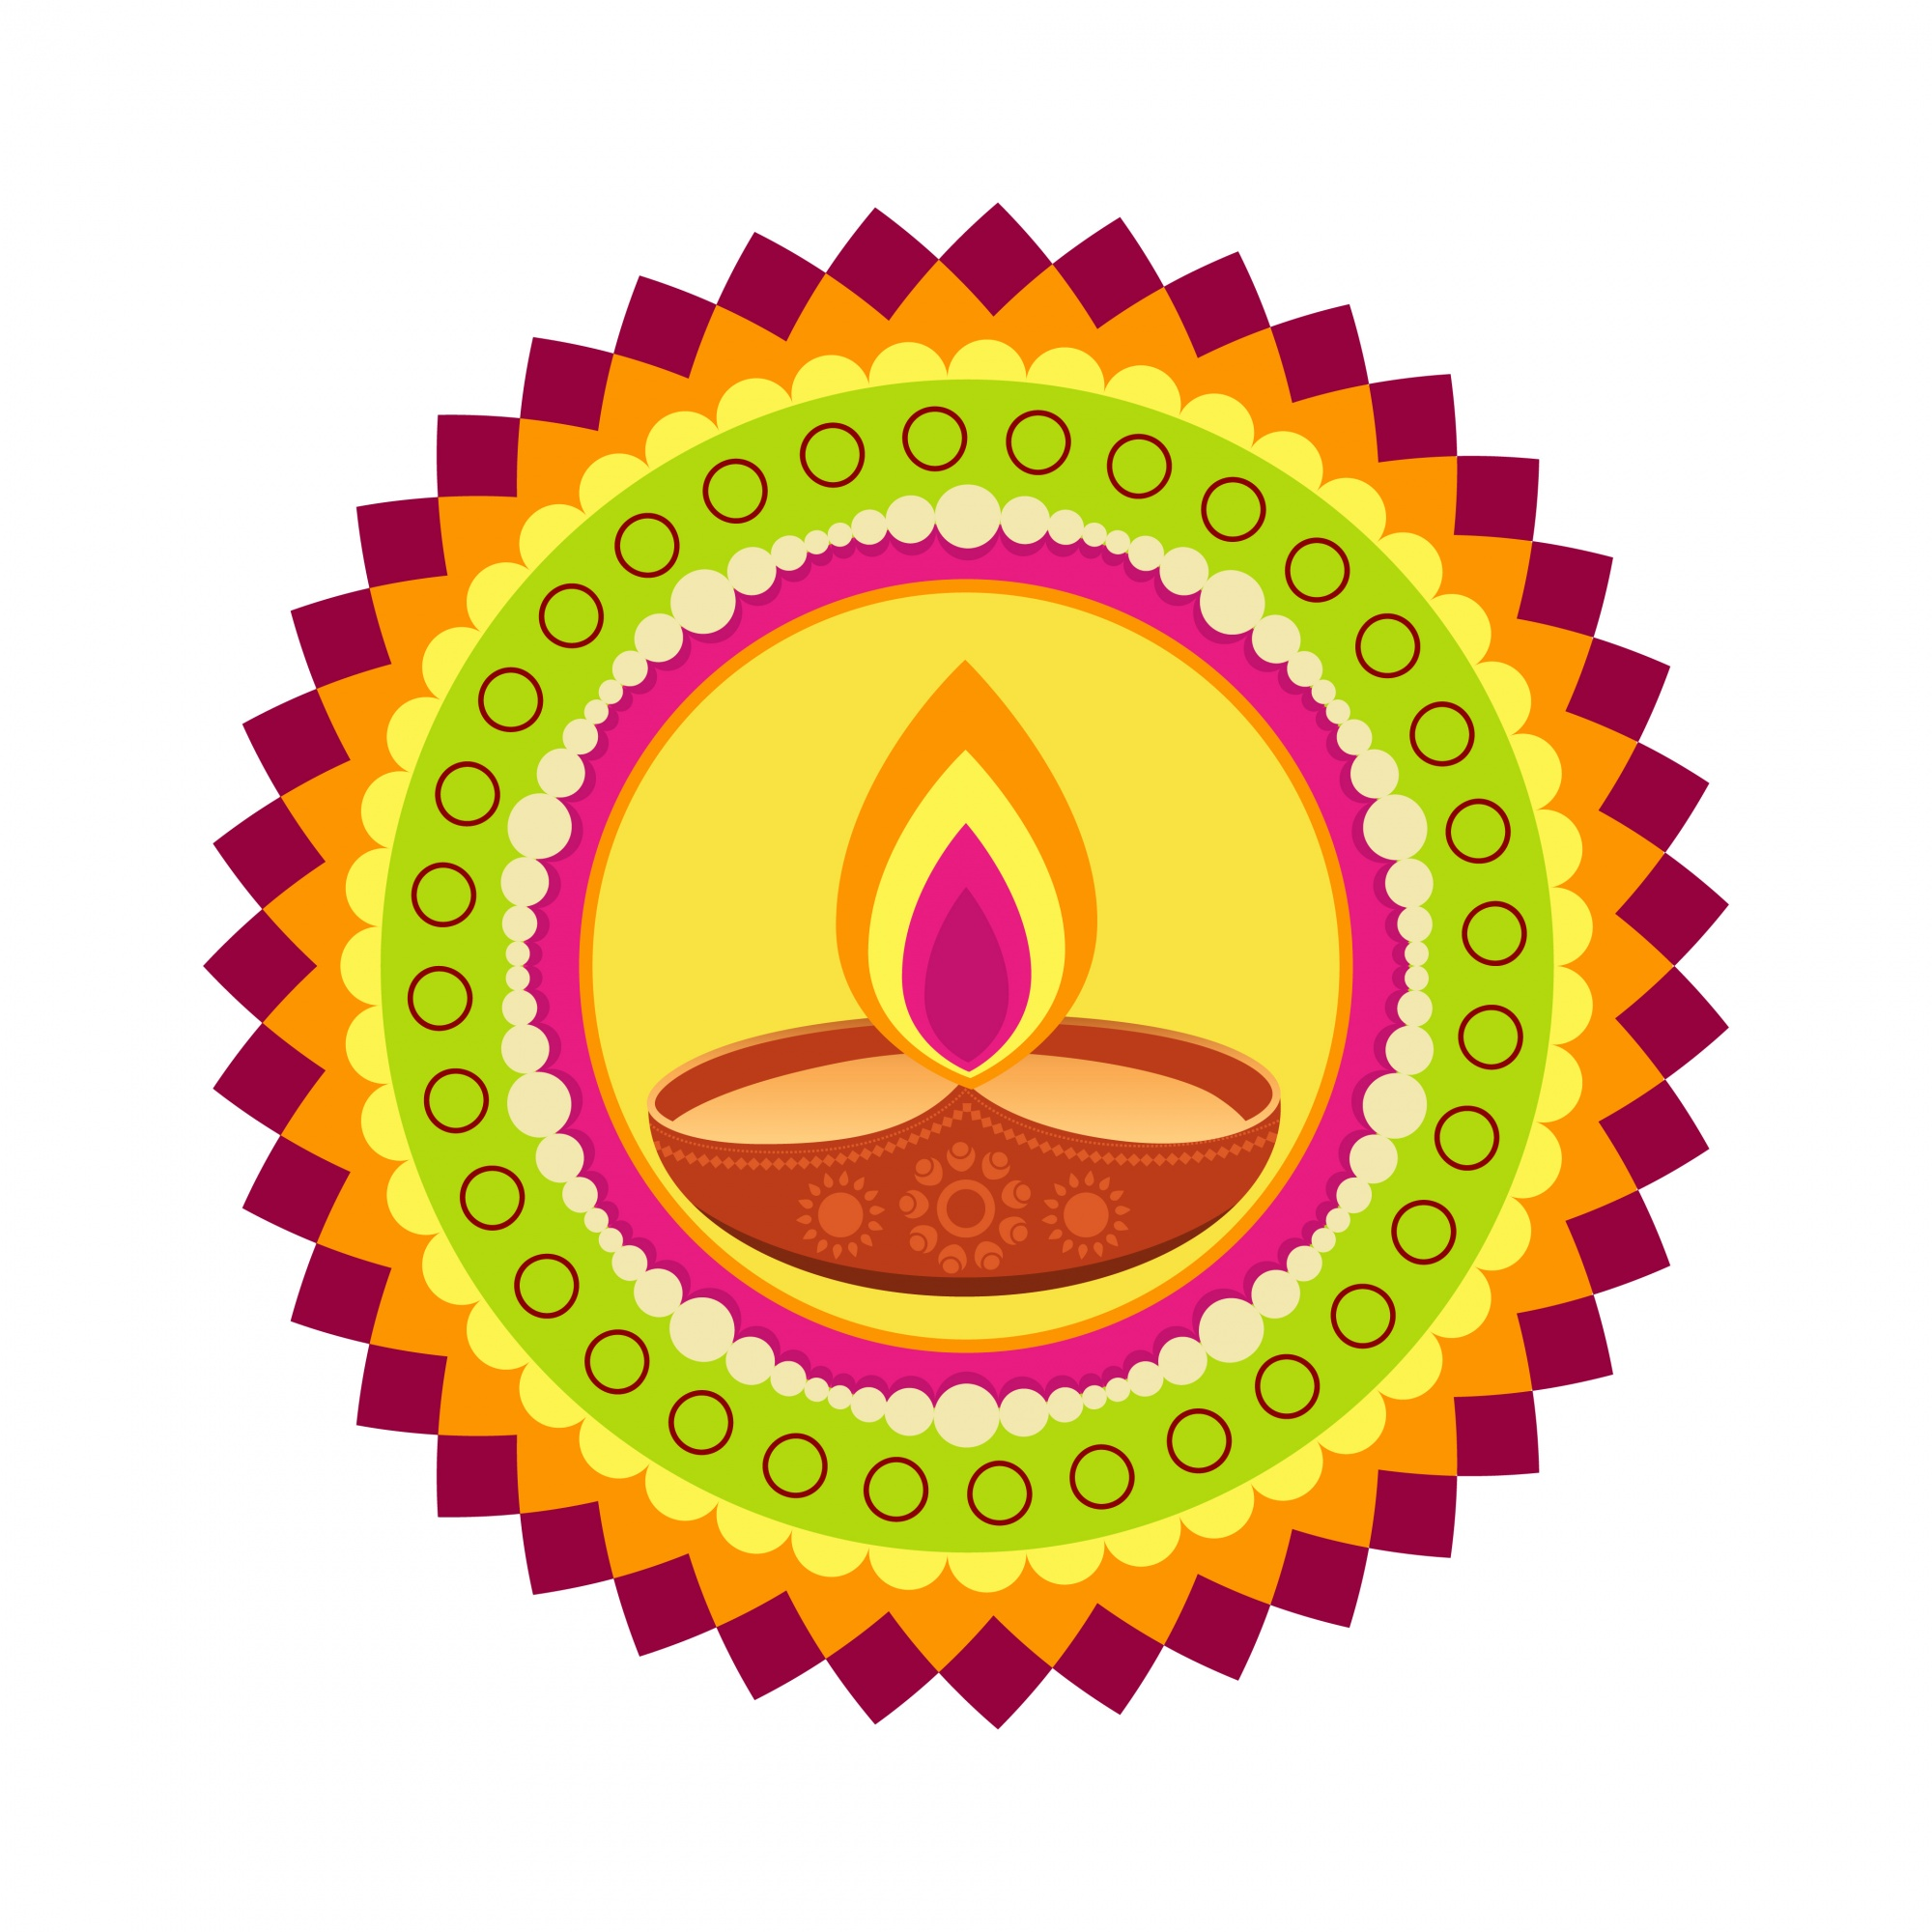 Circular design for diwali festival